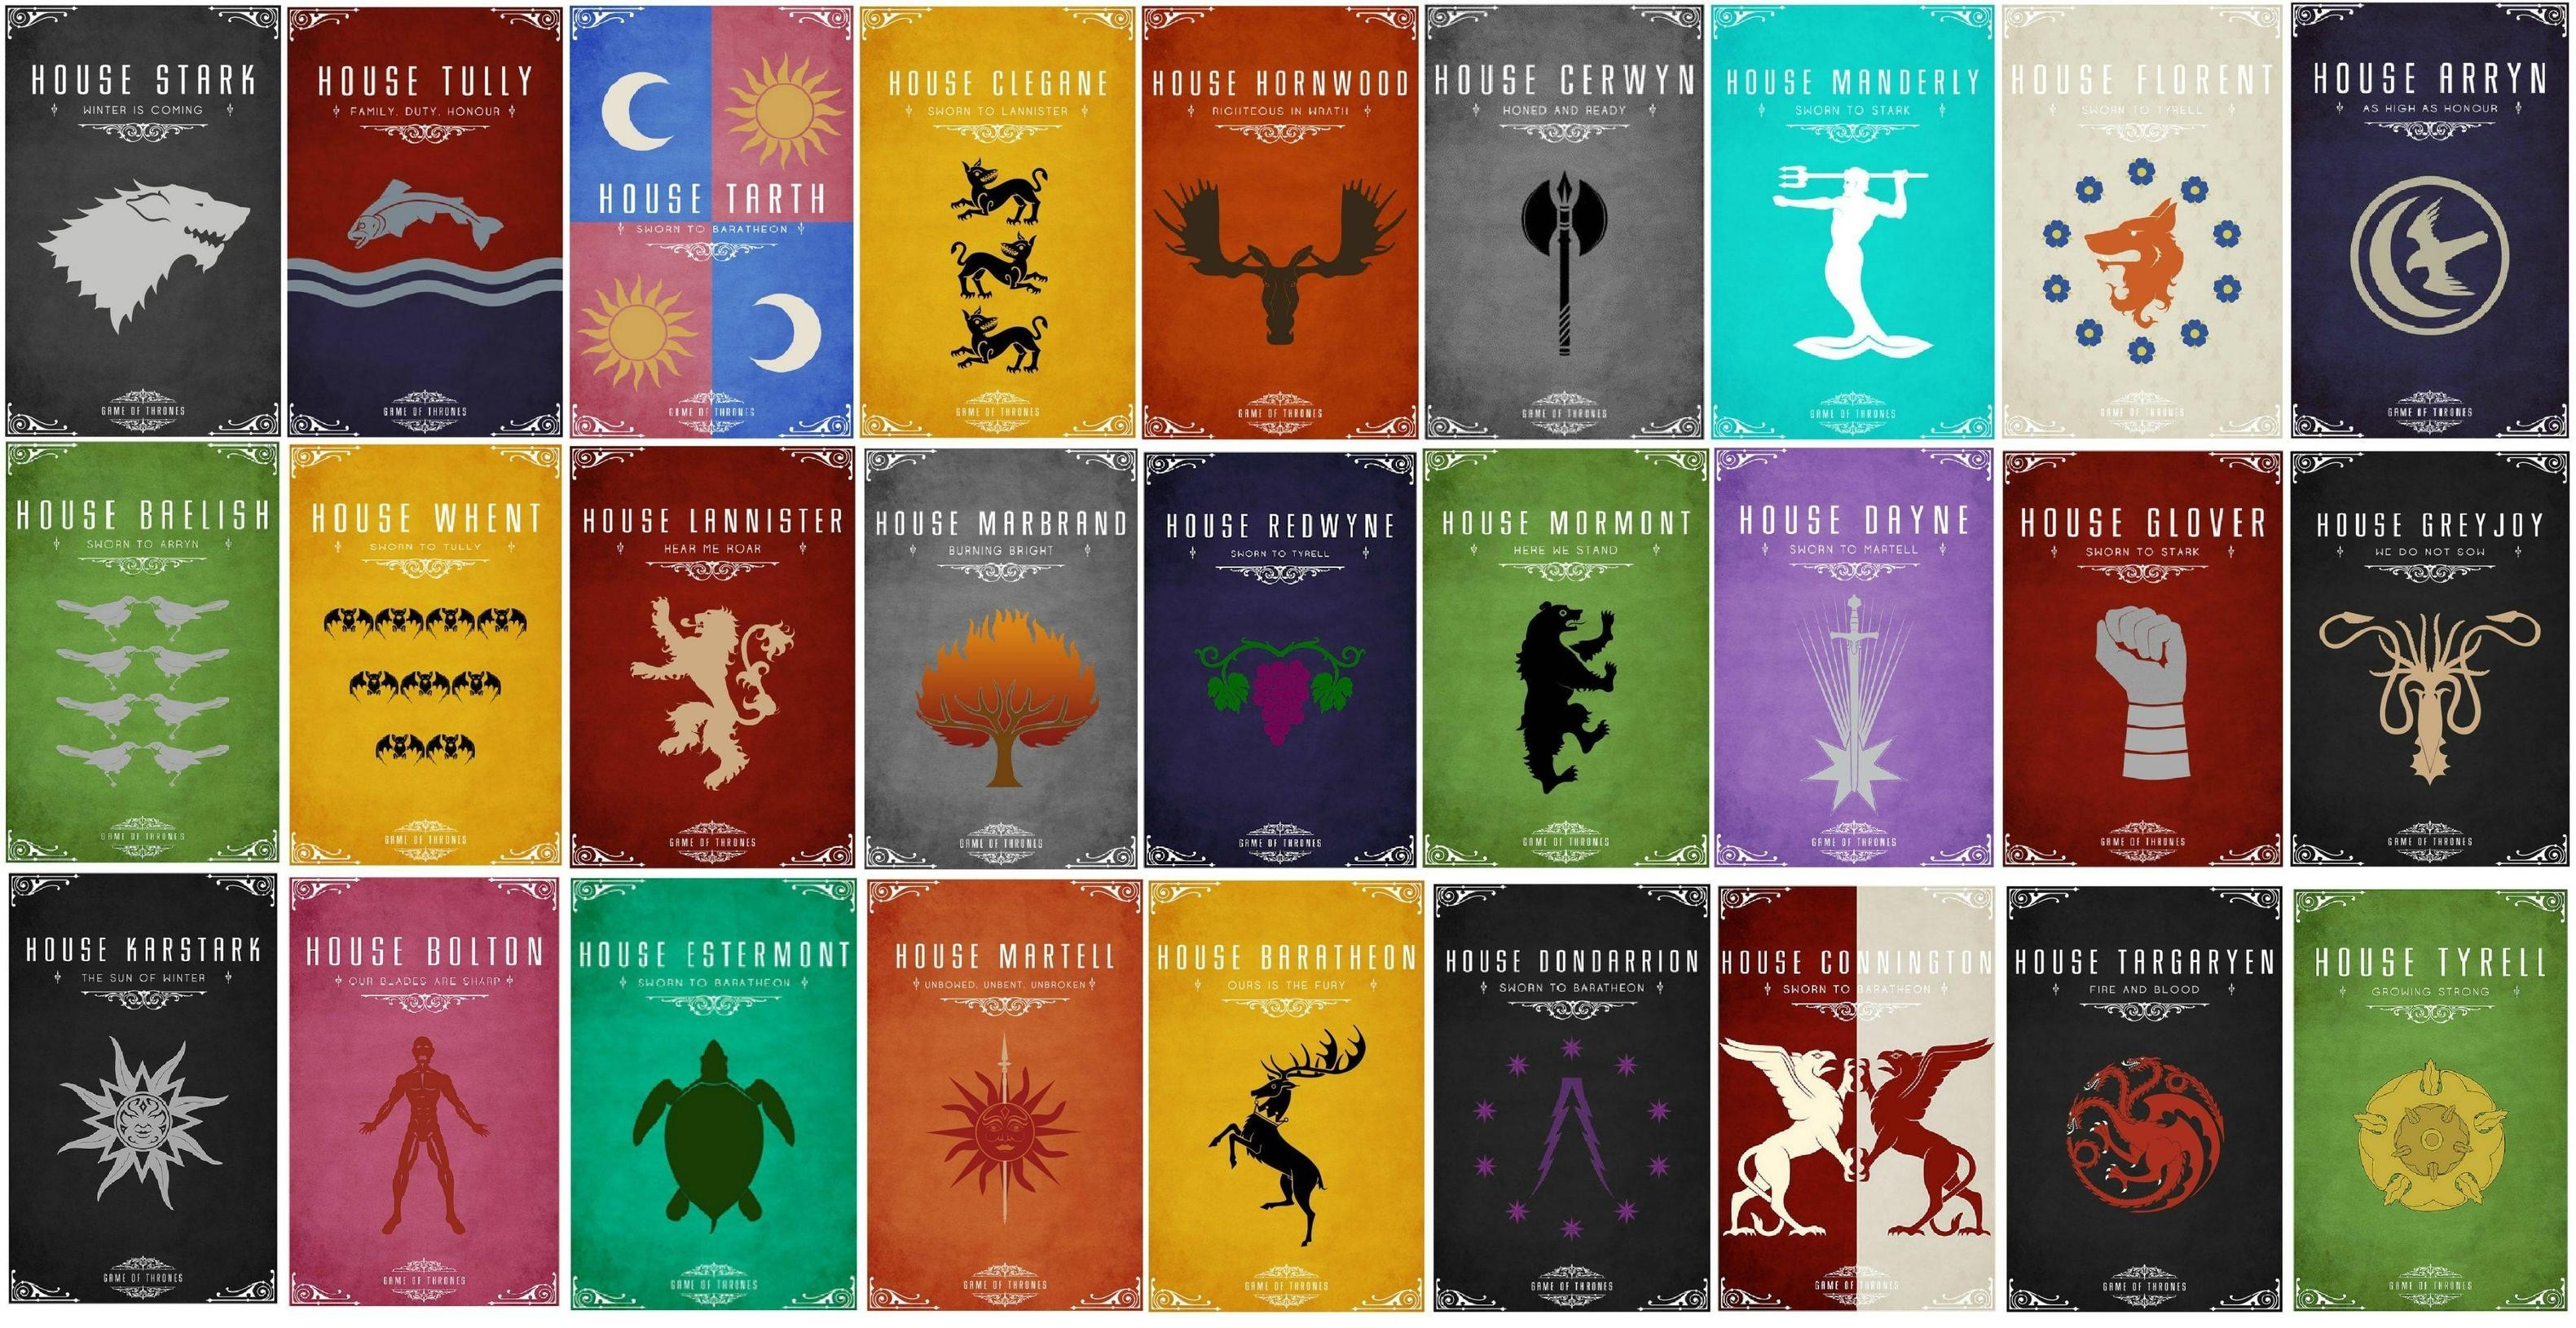 Game Of Thrones House Wallpapers Wallpapertag